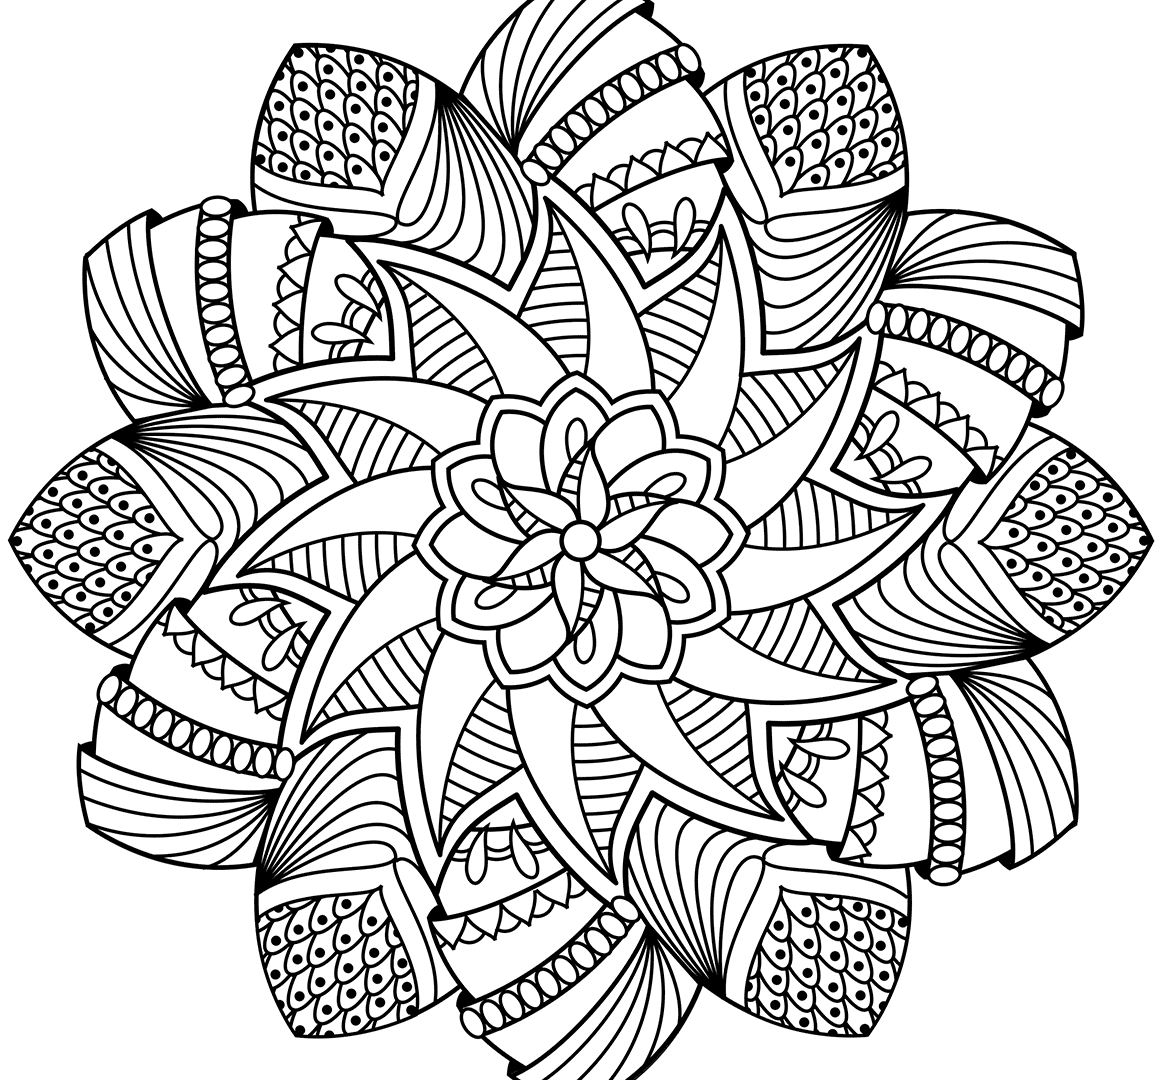 Mandala Coloring Sheets | Coloringnori - Coloring Pages ...